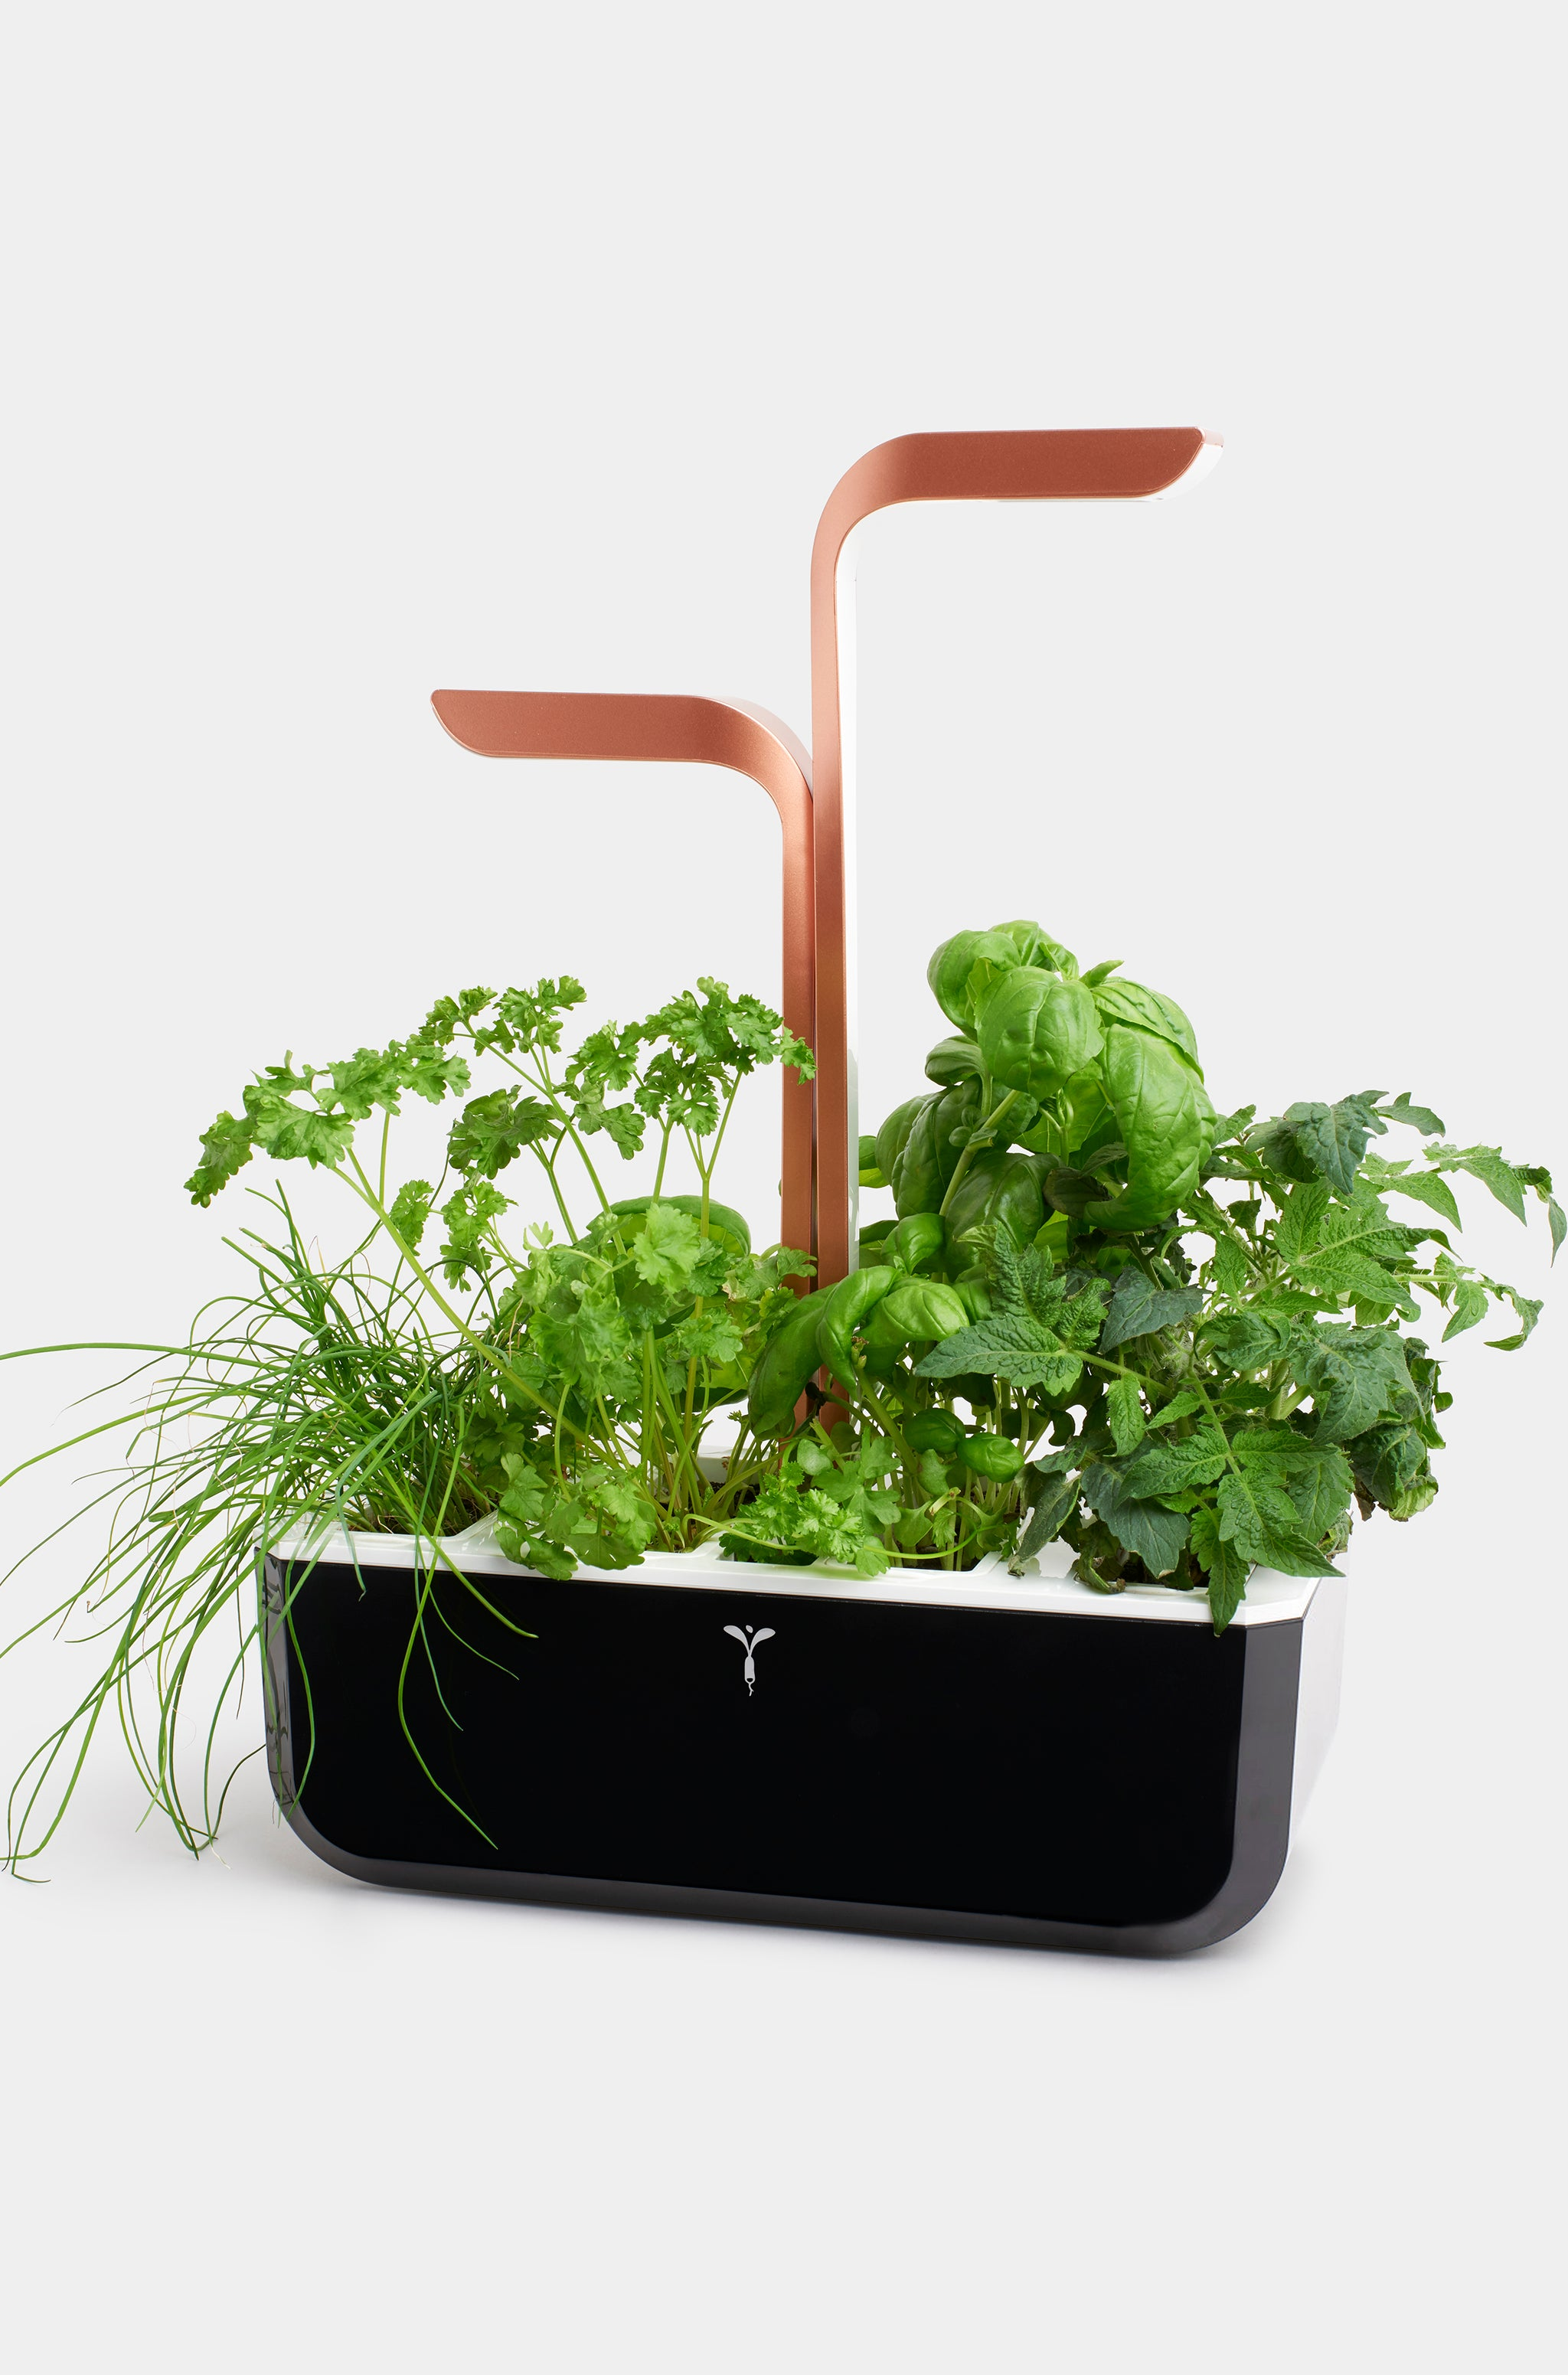 Veritable Smart Indoor Garden Herb Kit